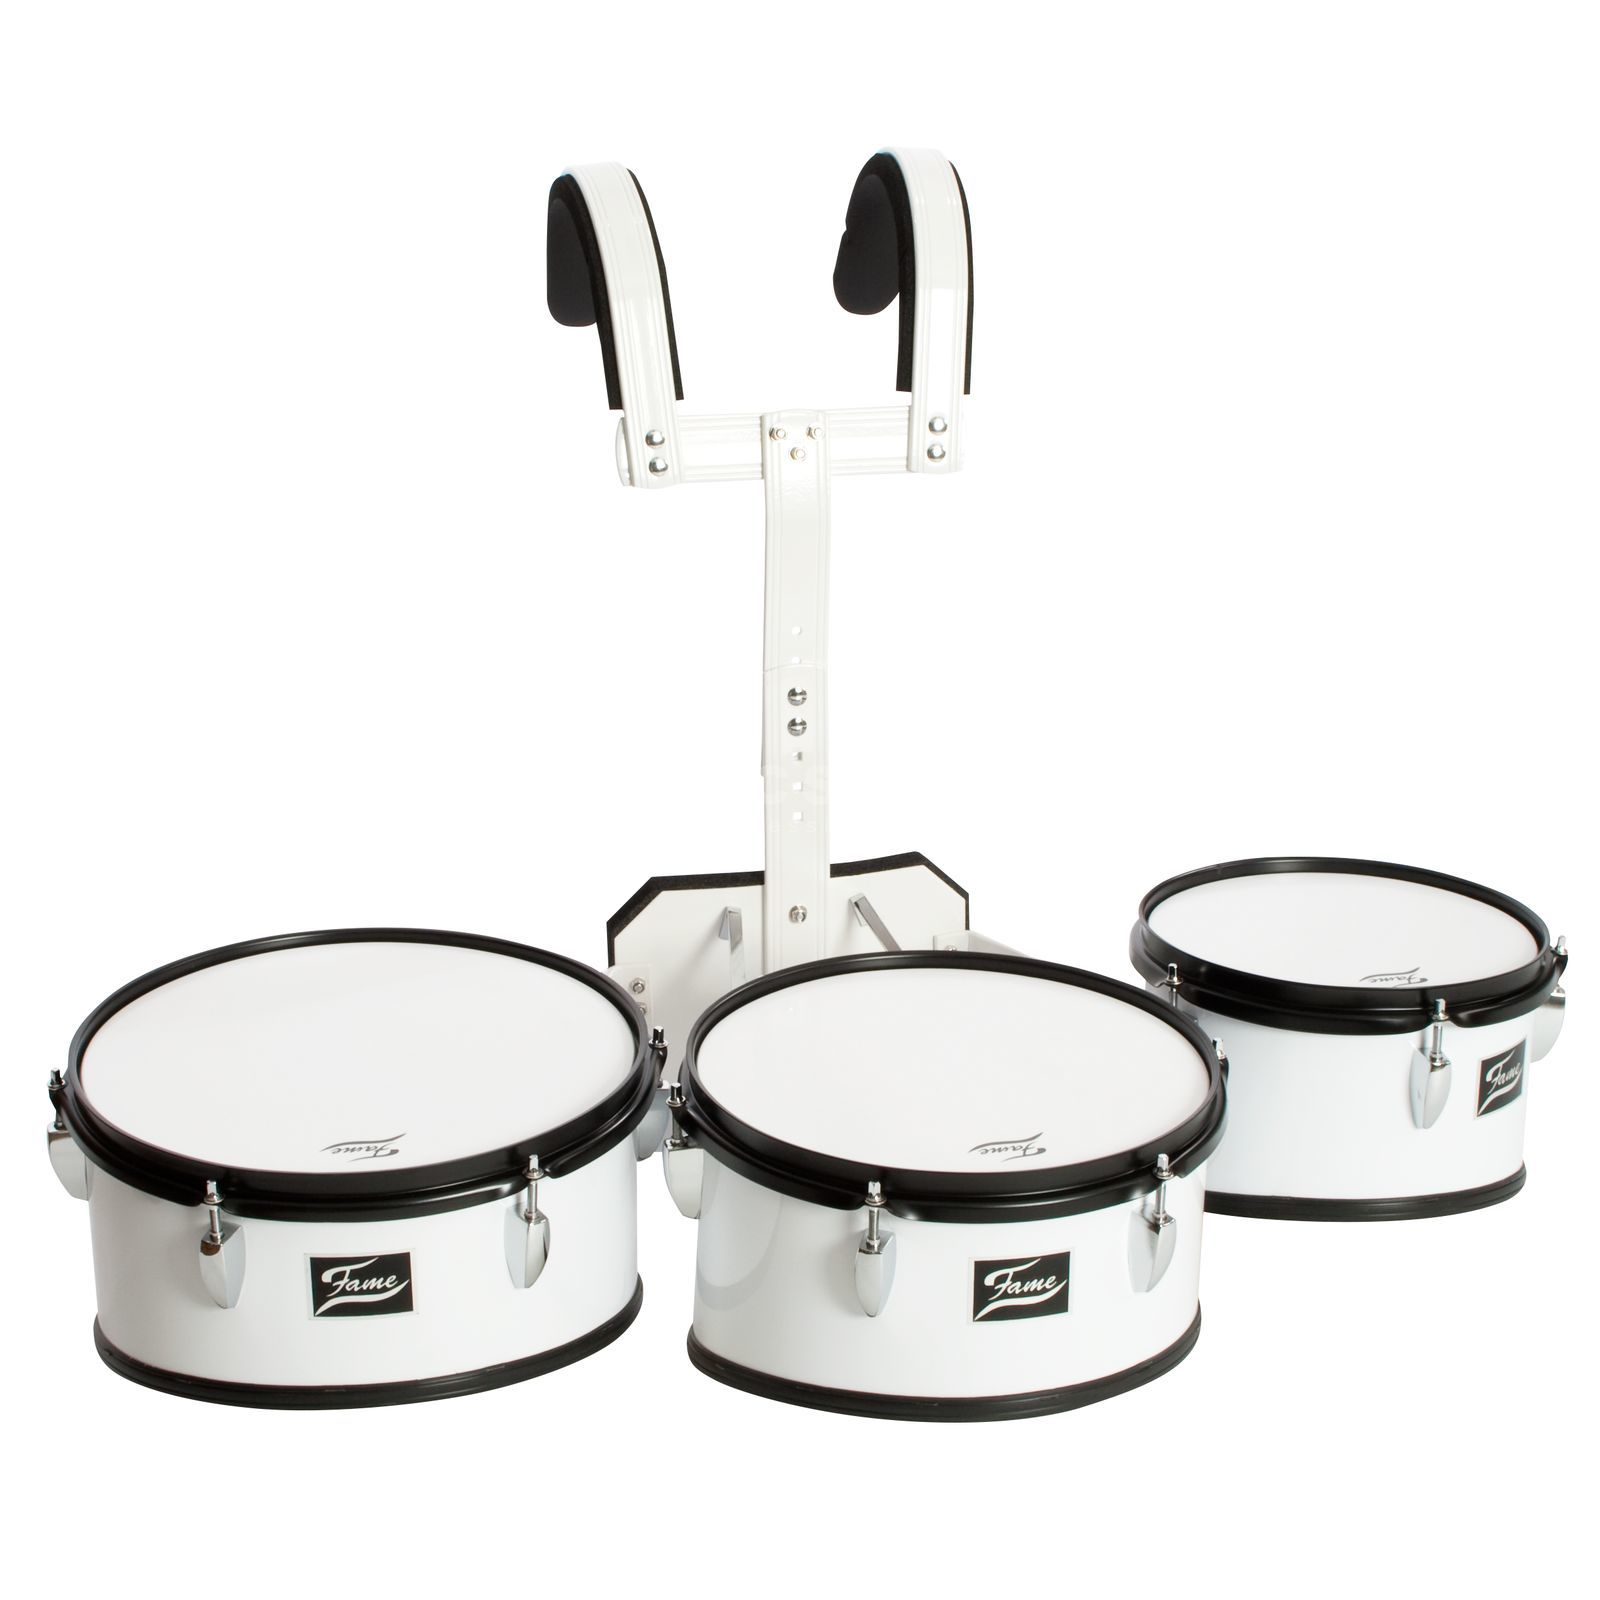 "Fame Marching TimpTom Set, 10"", 12"", 13"" Produktbild"